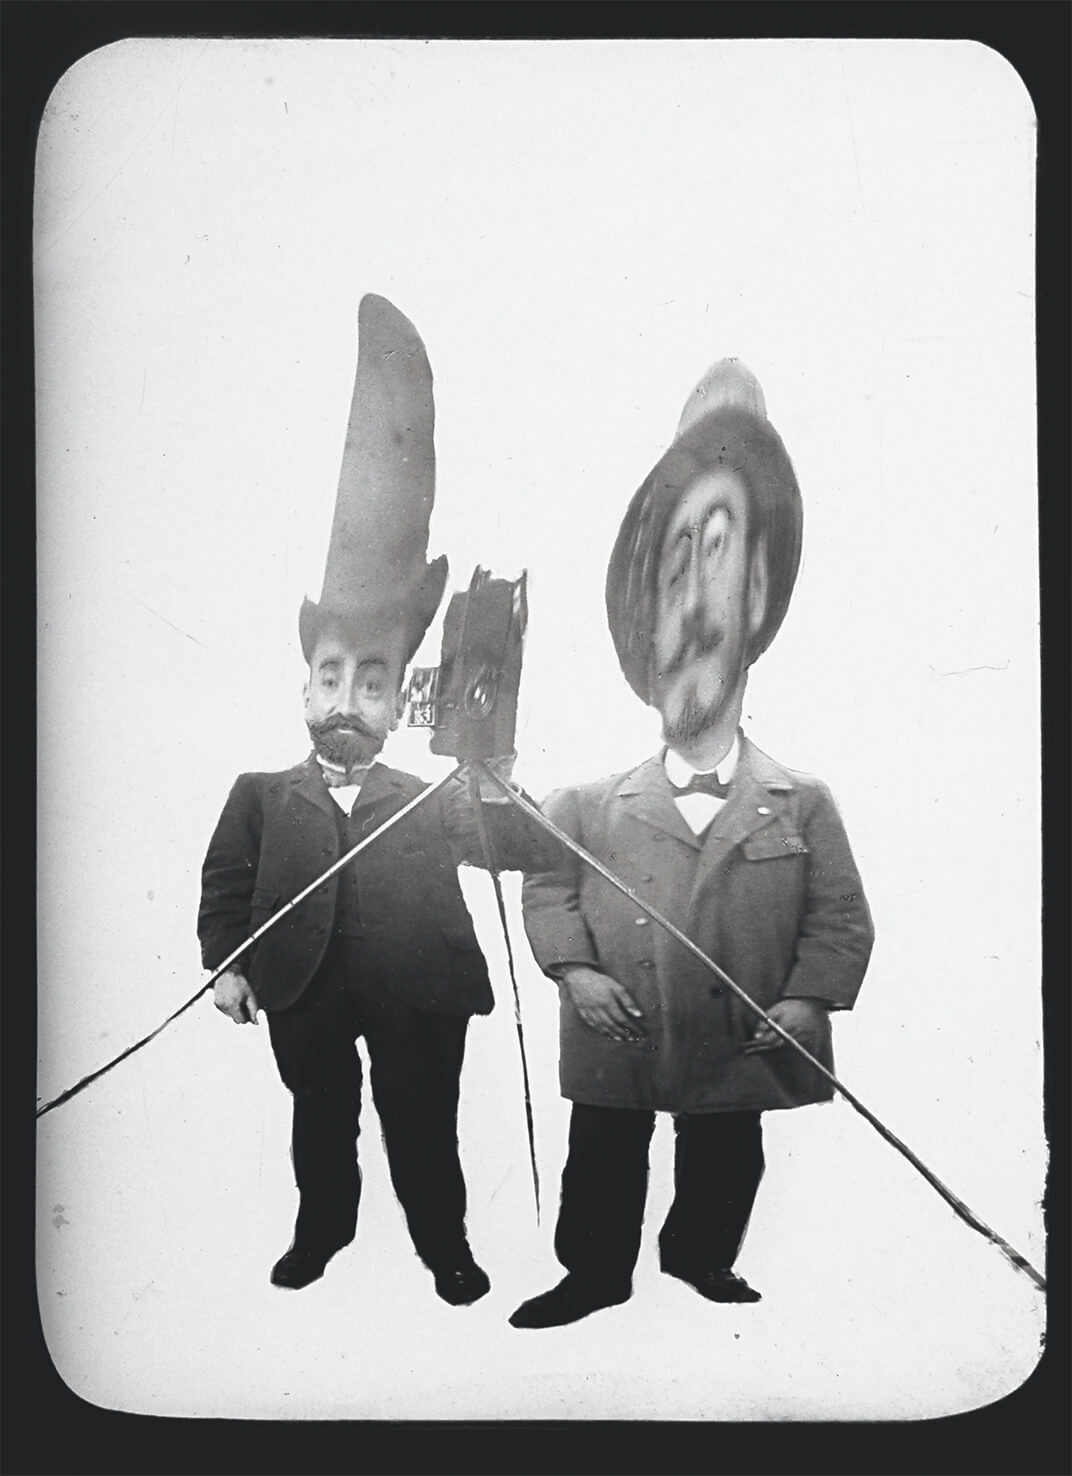 Léon Gimpel, Photography in a distorting mirror, 1900. Courtesy éditions Textuel © 2015 Private collection